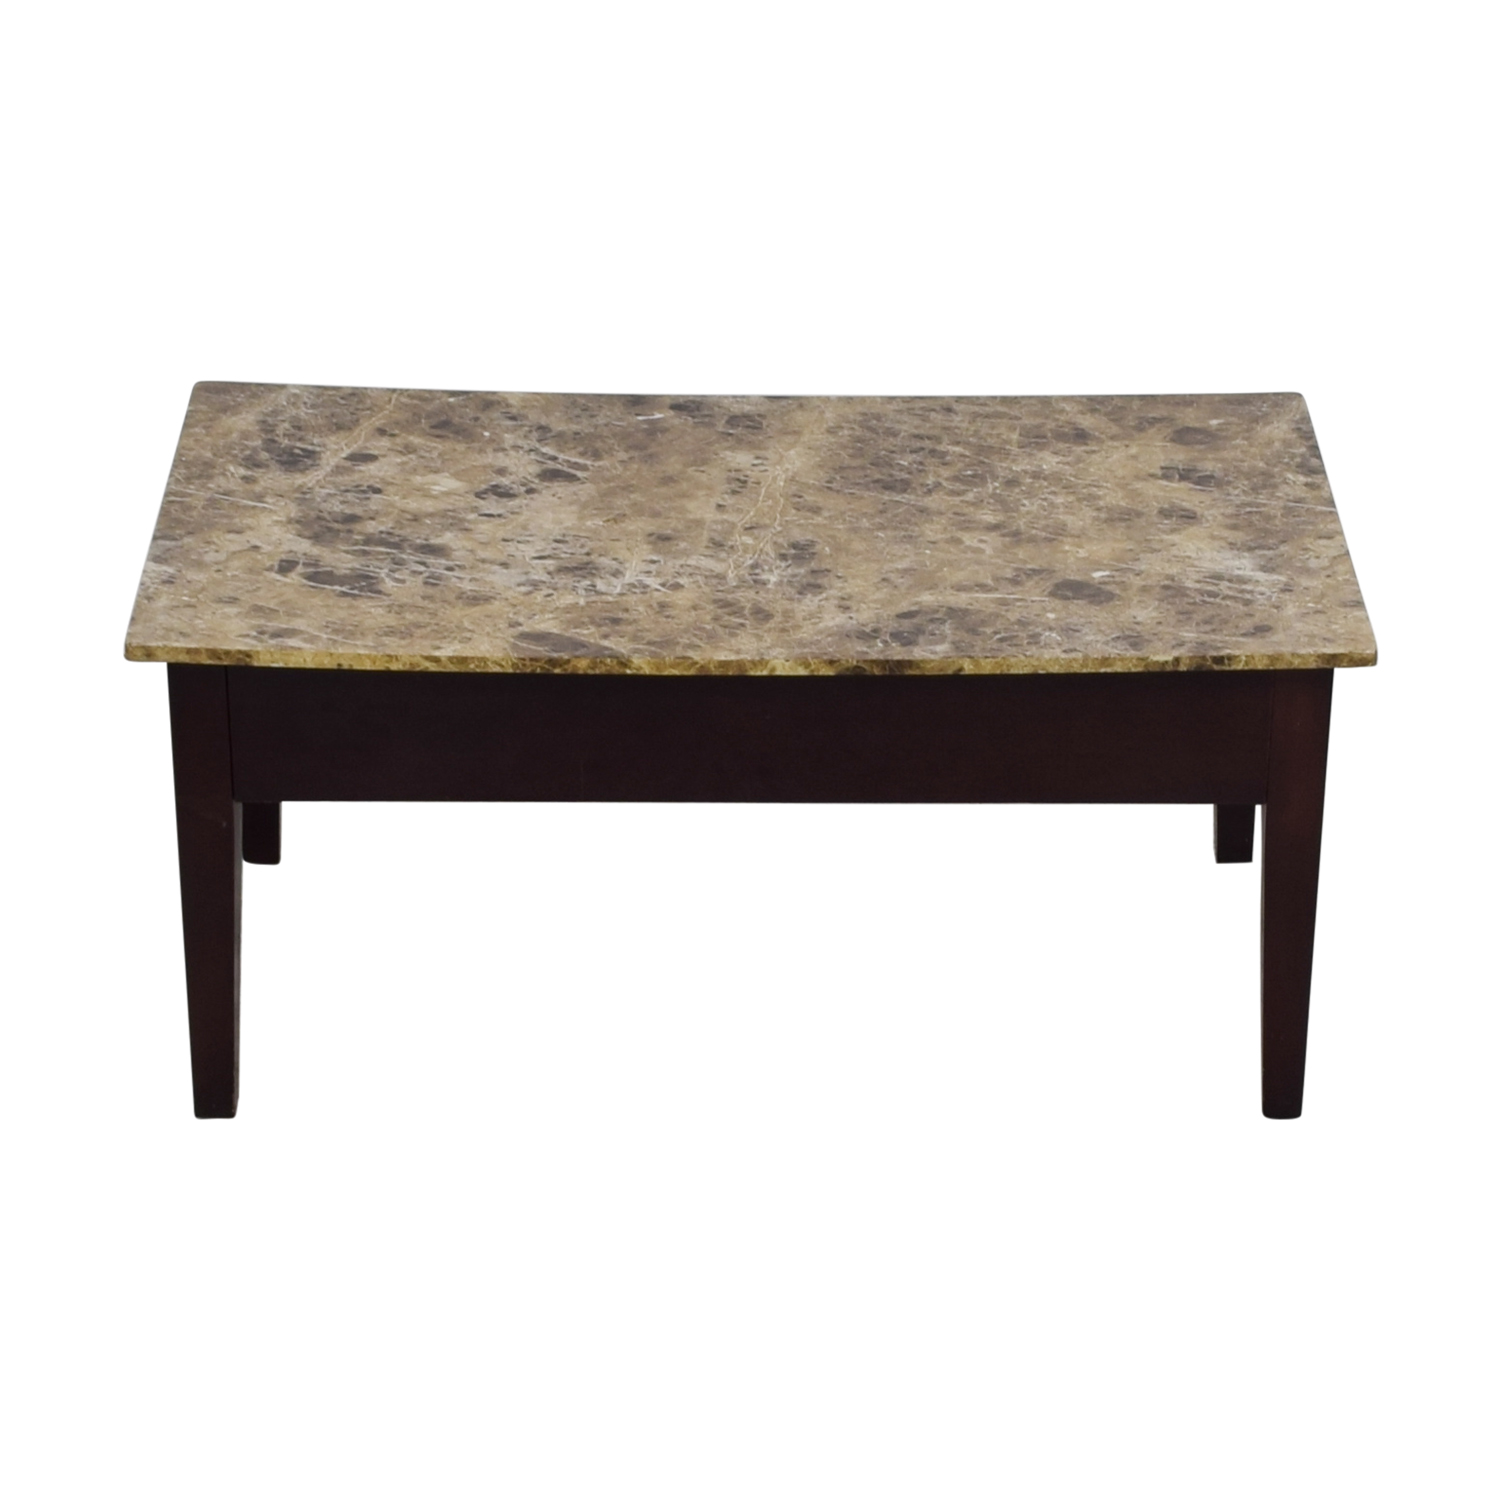 Cool 90 Off Faux Marble Top Coffee Table With Storage Tables Evergreenethics Interior Chair Design Evergreenethicsorg